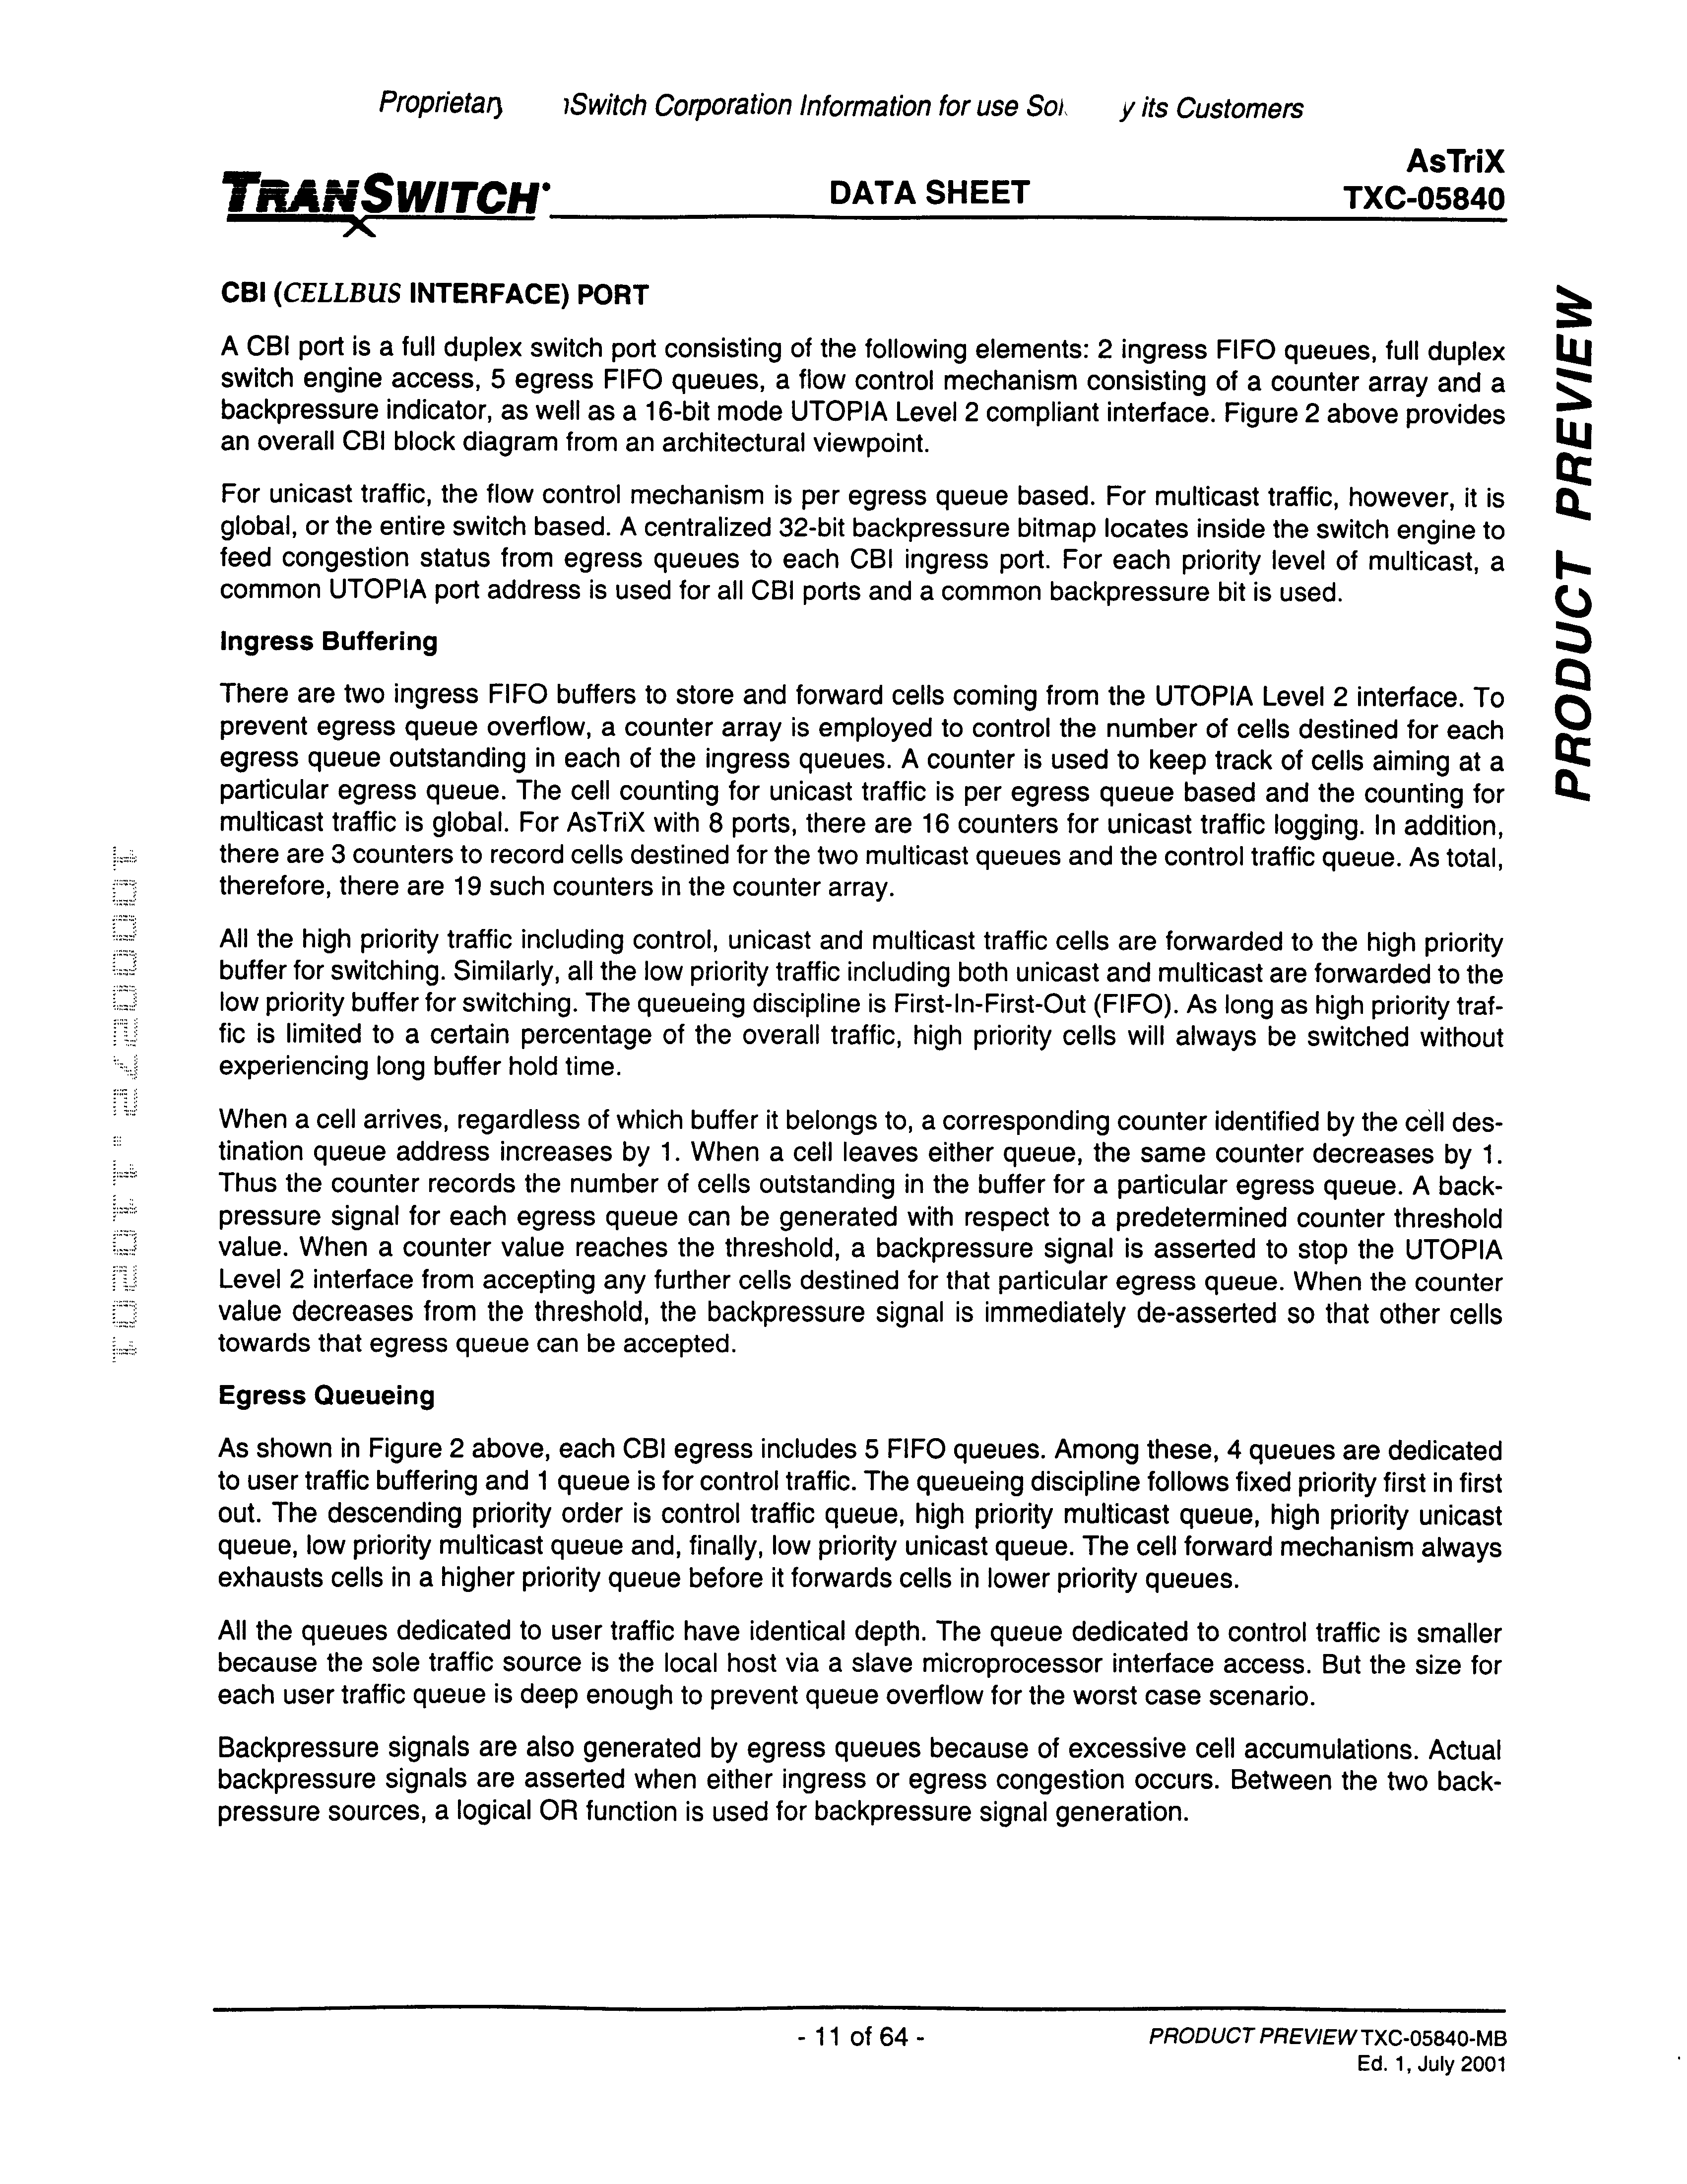 US6721310B2 - Multiport non-blocking high capacity ATM and packet